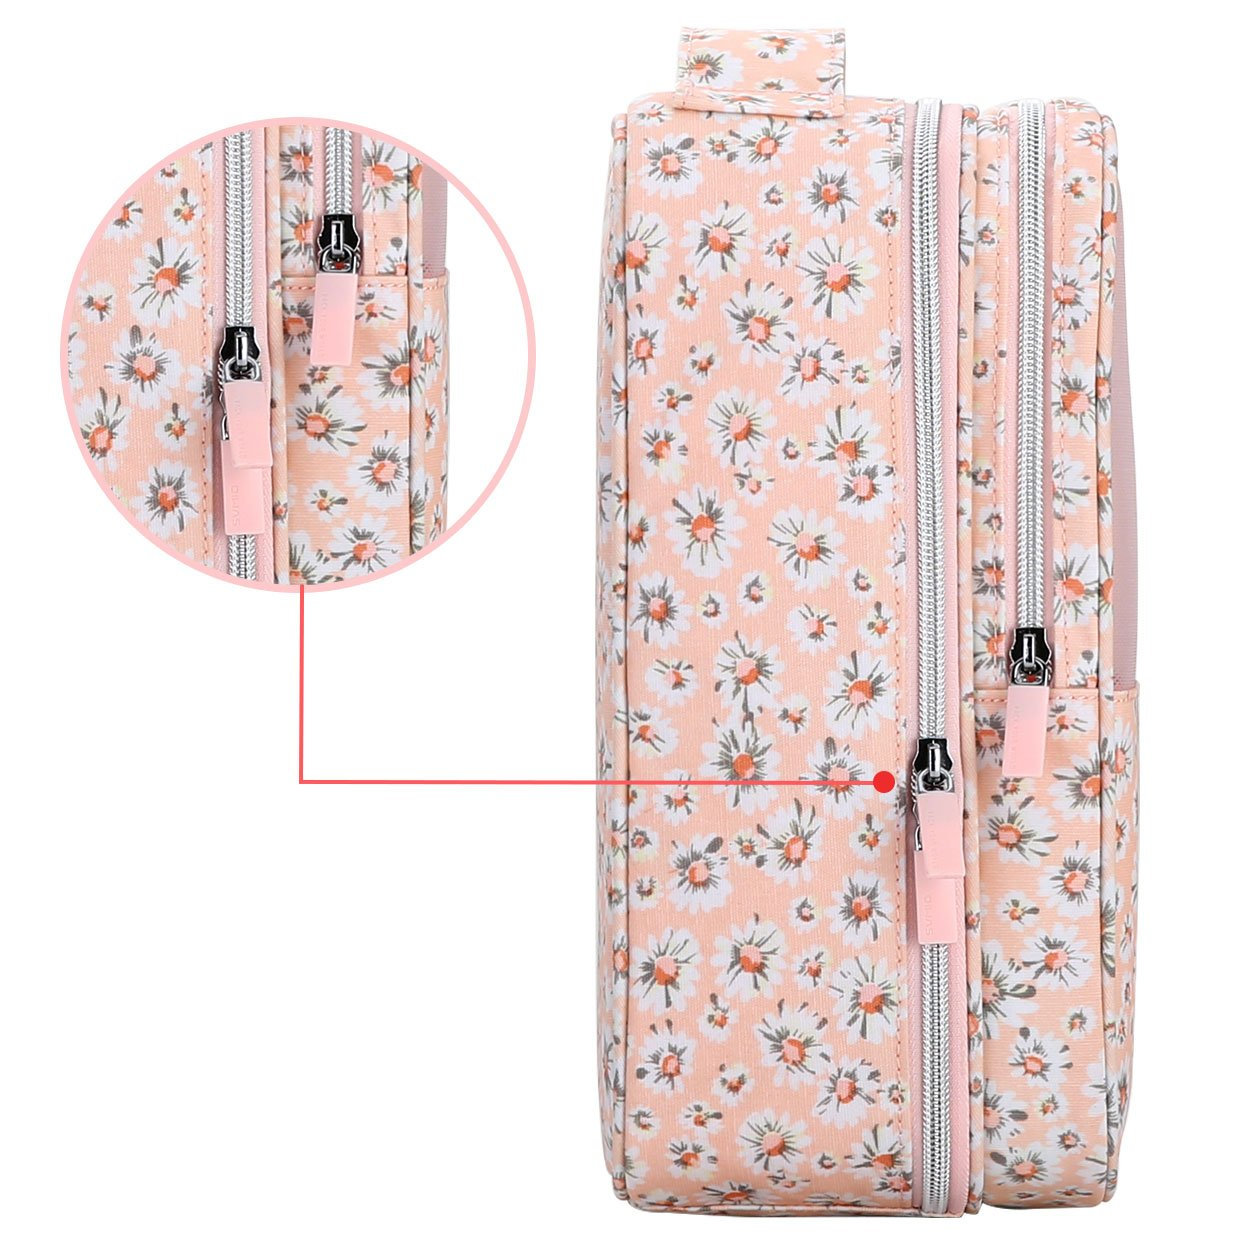 OIWAS Shoe Bag Mesh Packing Cube Portable Luggage Organiser Storage Toiletry Bags Suitcase Compression Pouches for Travel